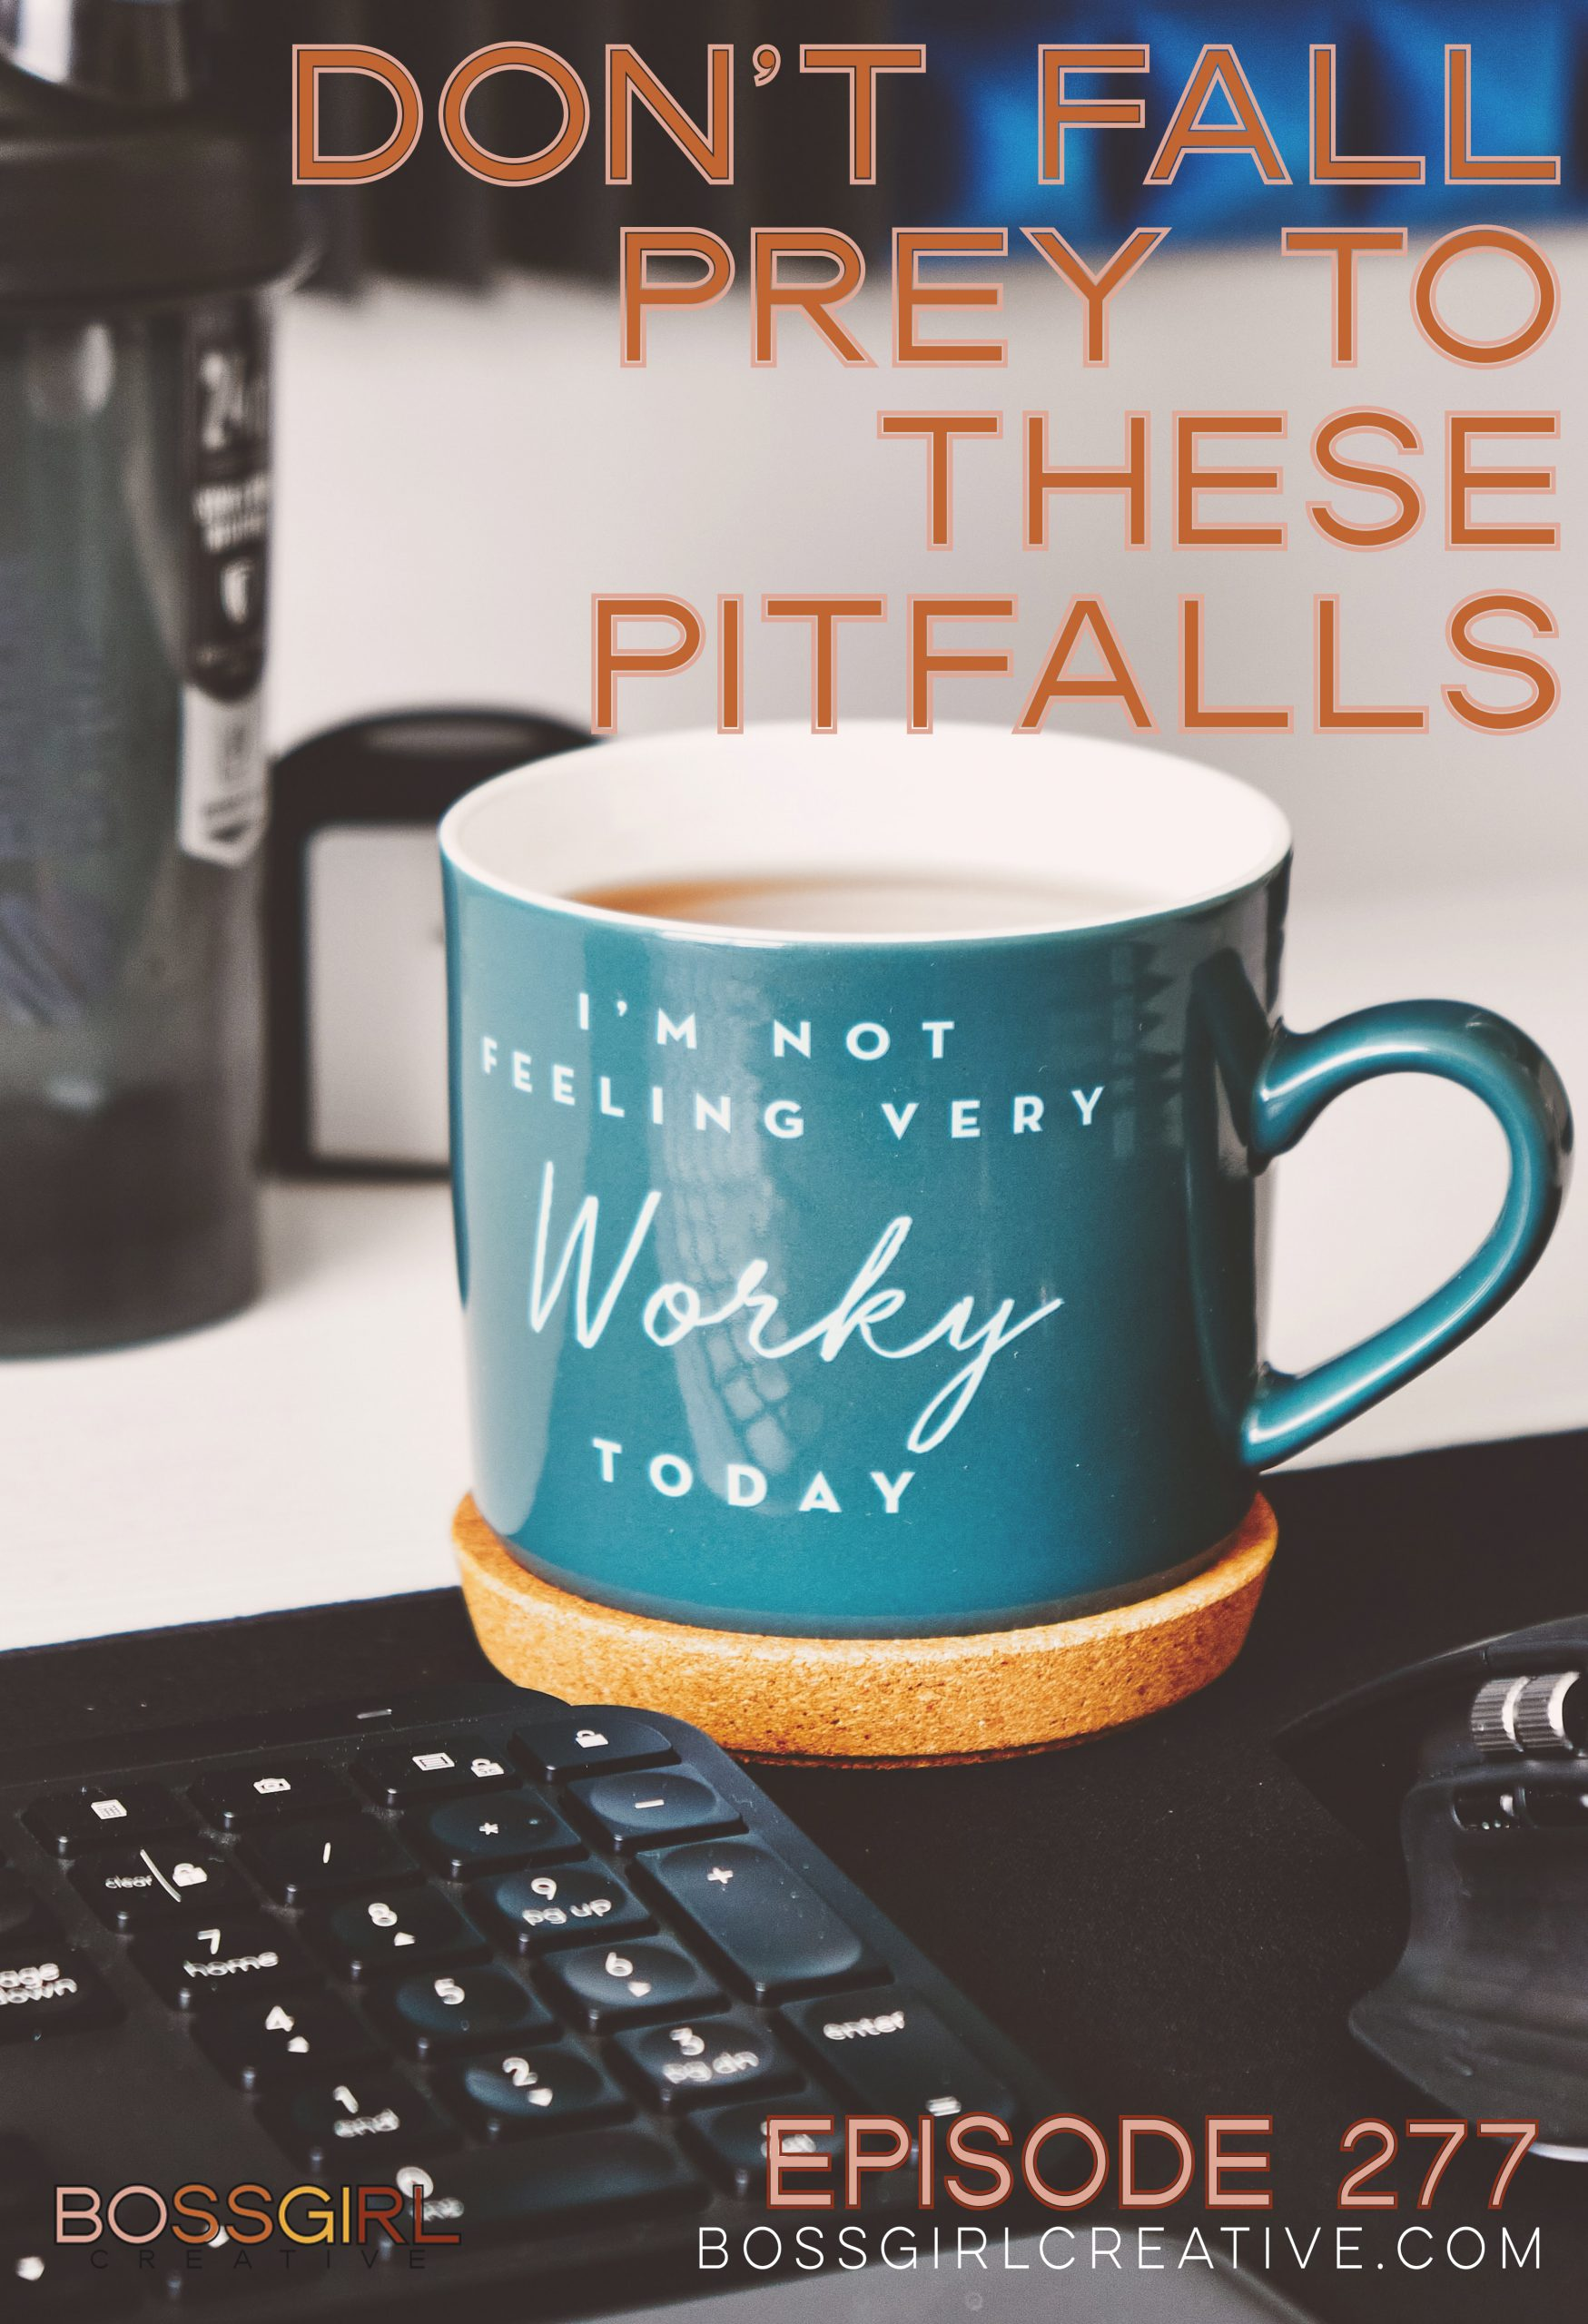 BGC Episode 277 - Don't Fall Prey to These Pitfalls